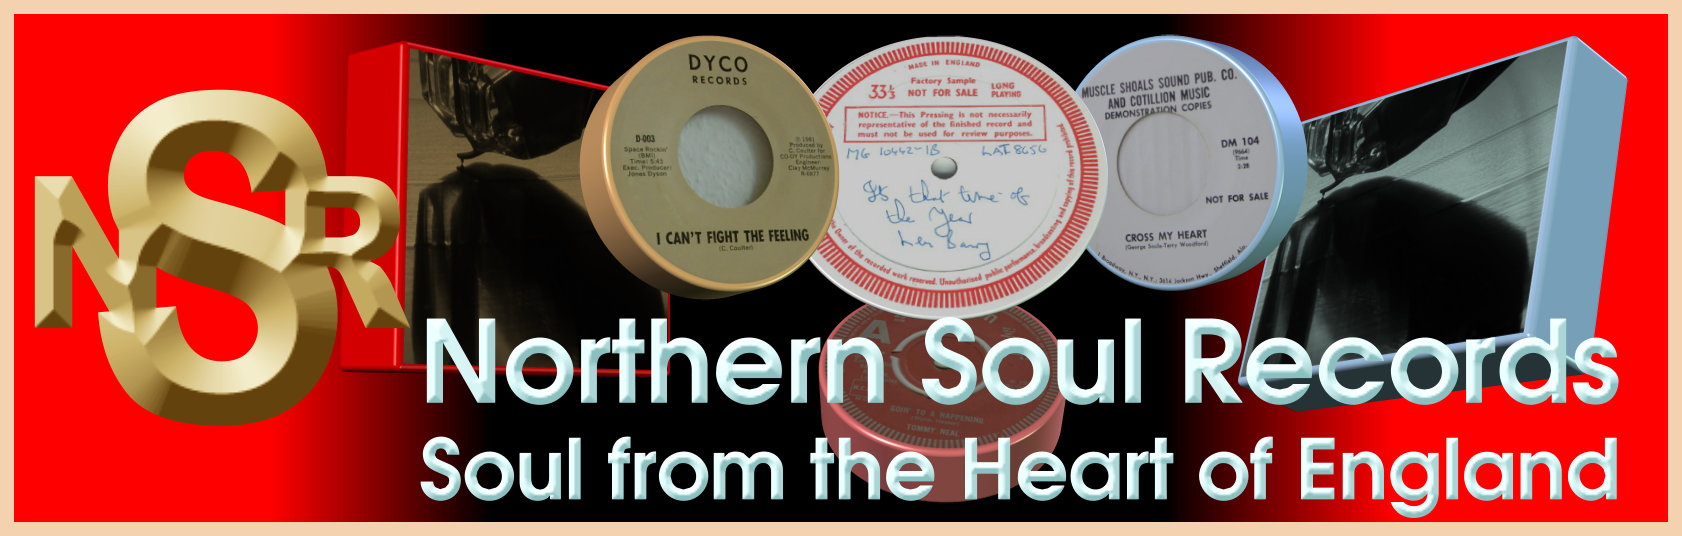 NorthernSoulRecords